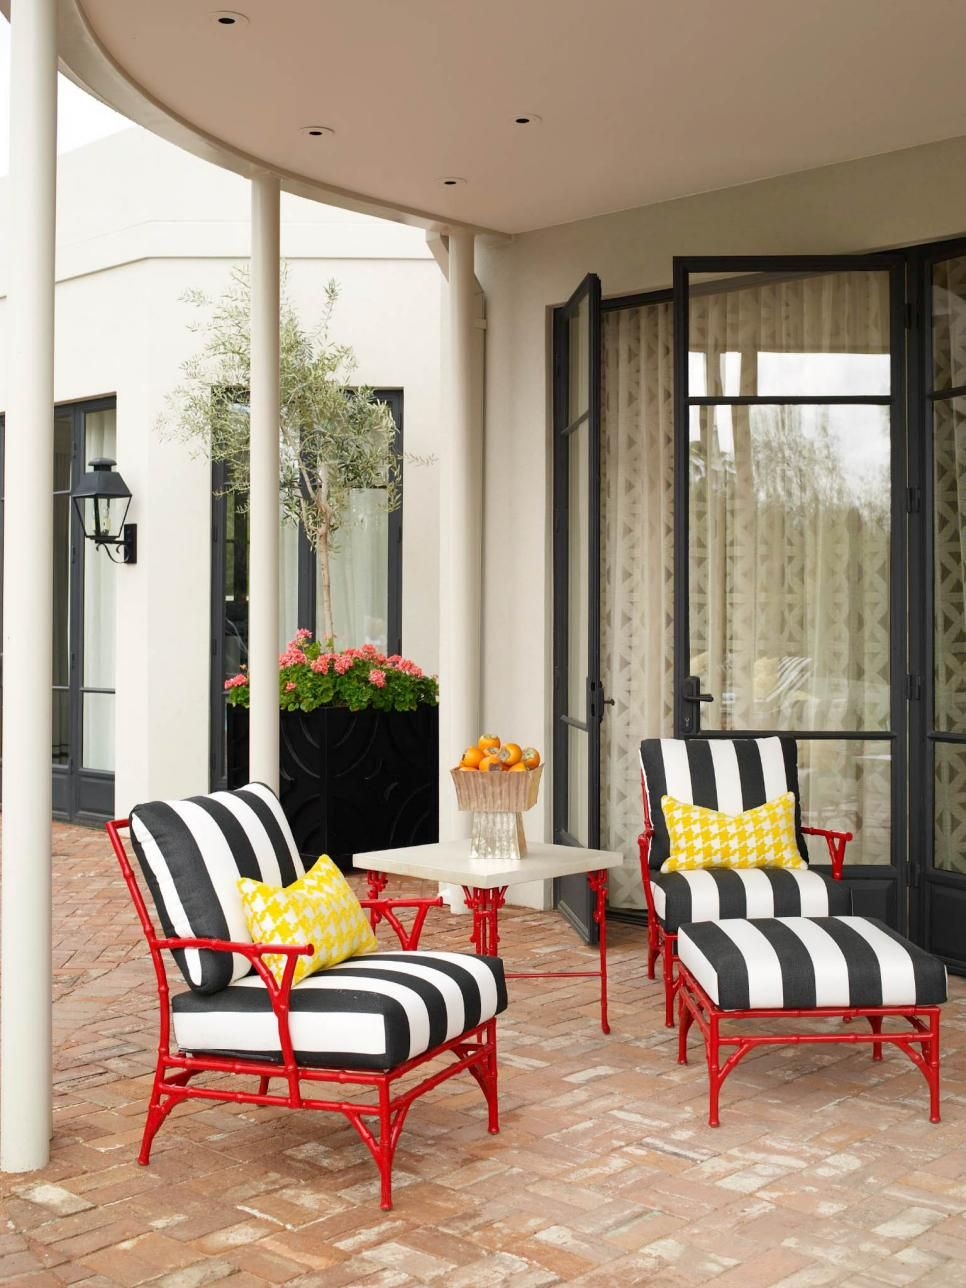 Art deco style bamboo furniture is given a modern update with a coat of glossy red paint black and white striped cushions and a fun yellow houndstooth